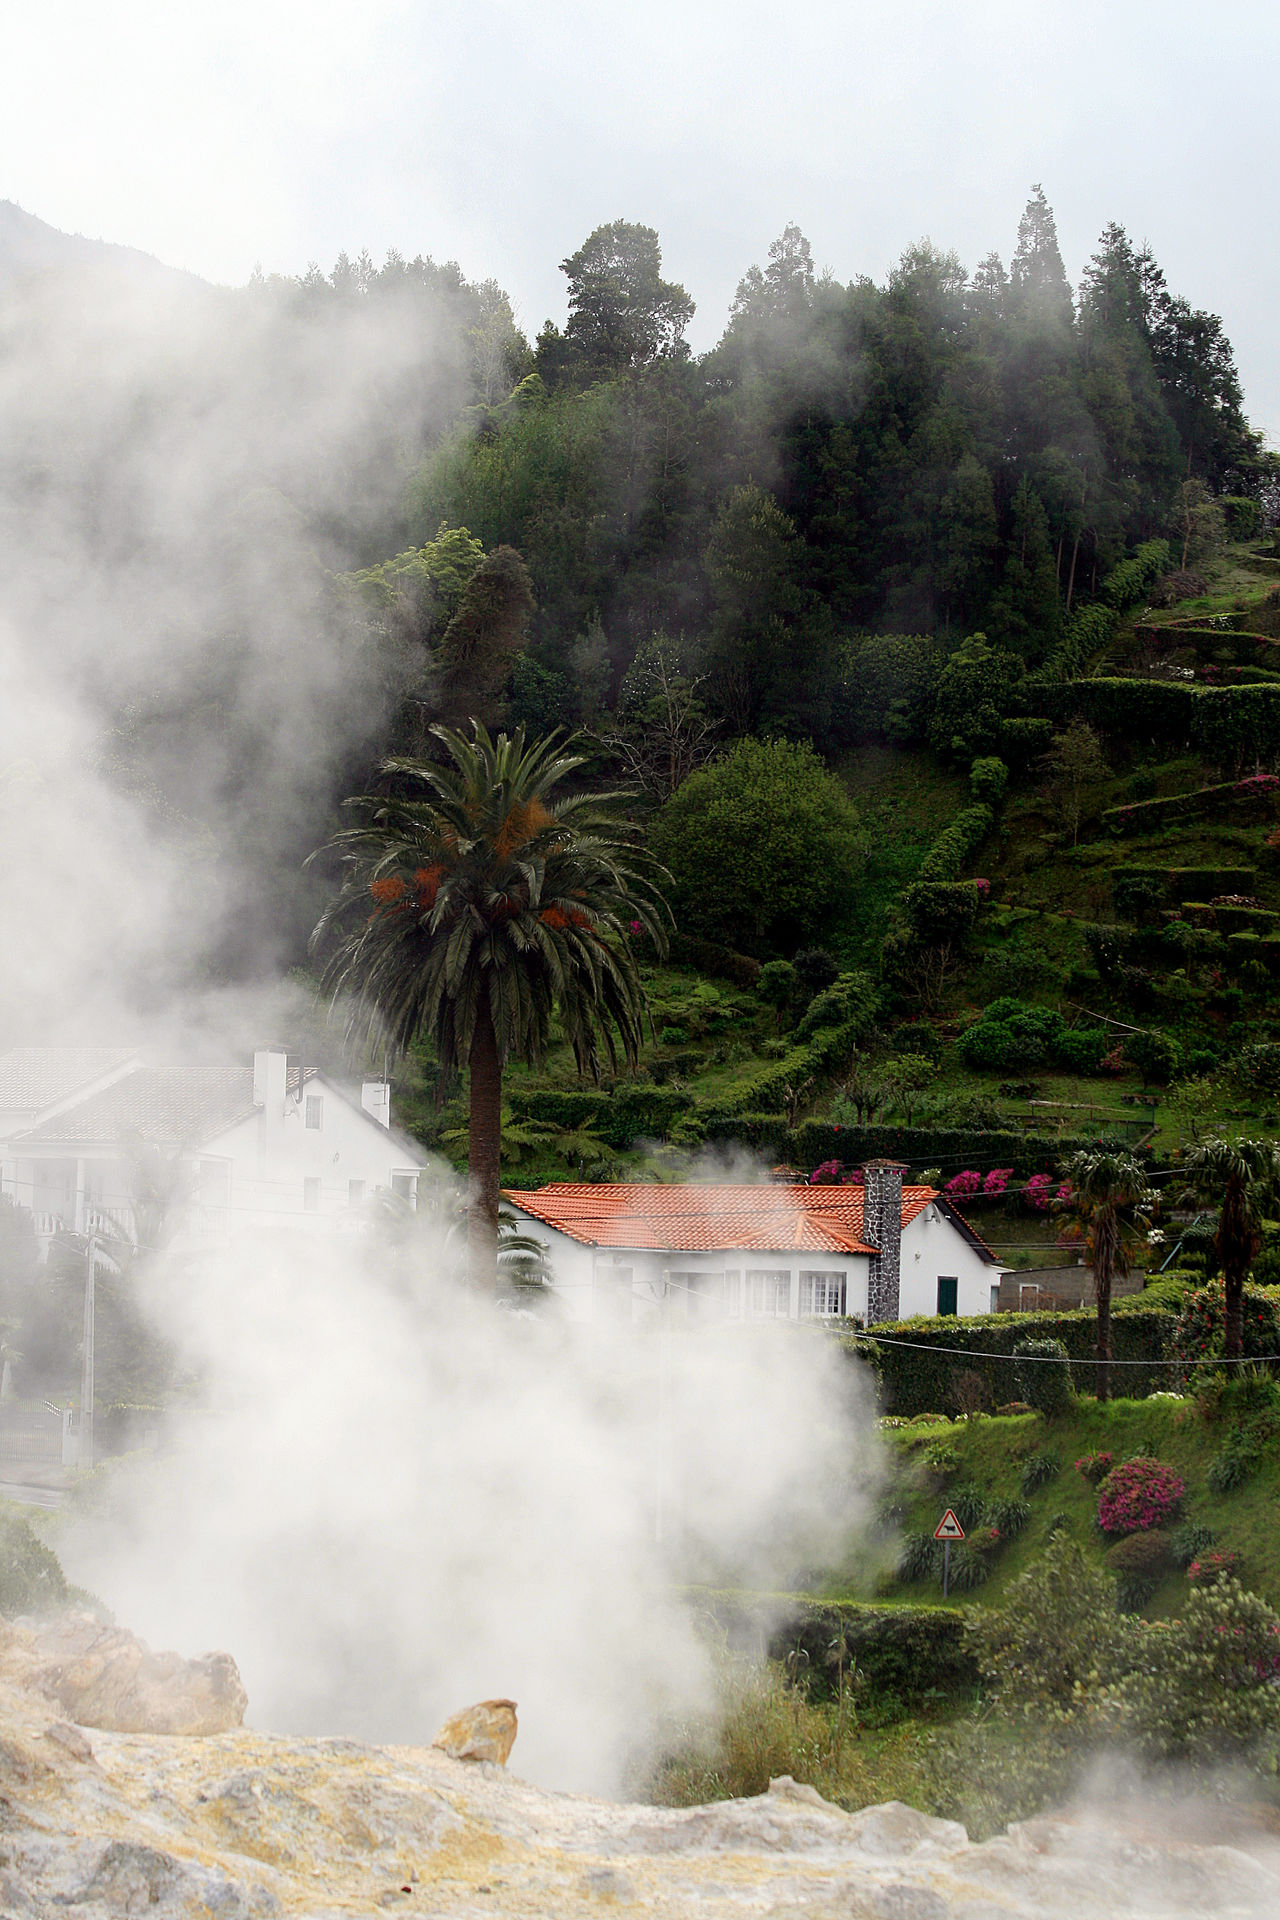 Azores Açores Beauty In Nature Environment Hot Spring Landscape Nature Outdoors Palm Tree Power In Nature Sao Miguel- Azores Scenics Smoke - Physical Structure Travel Tree